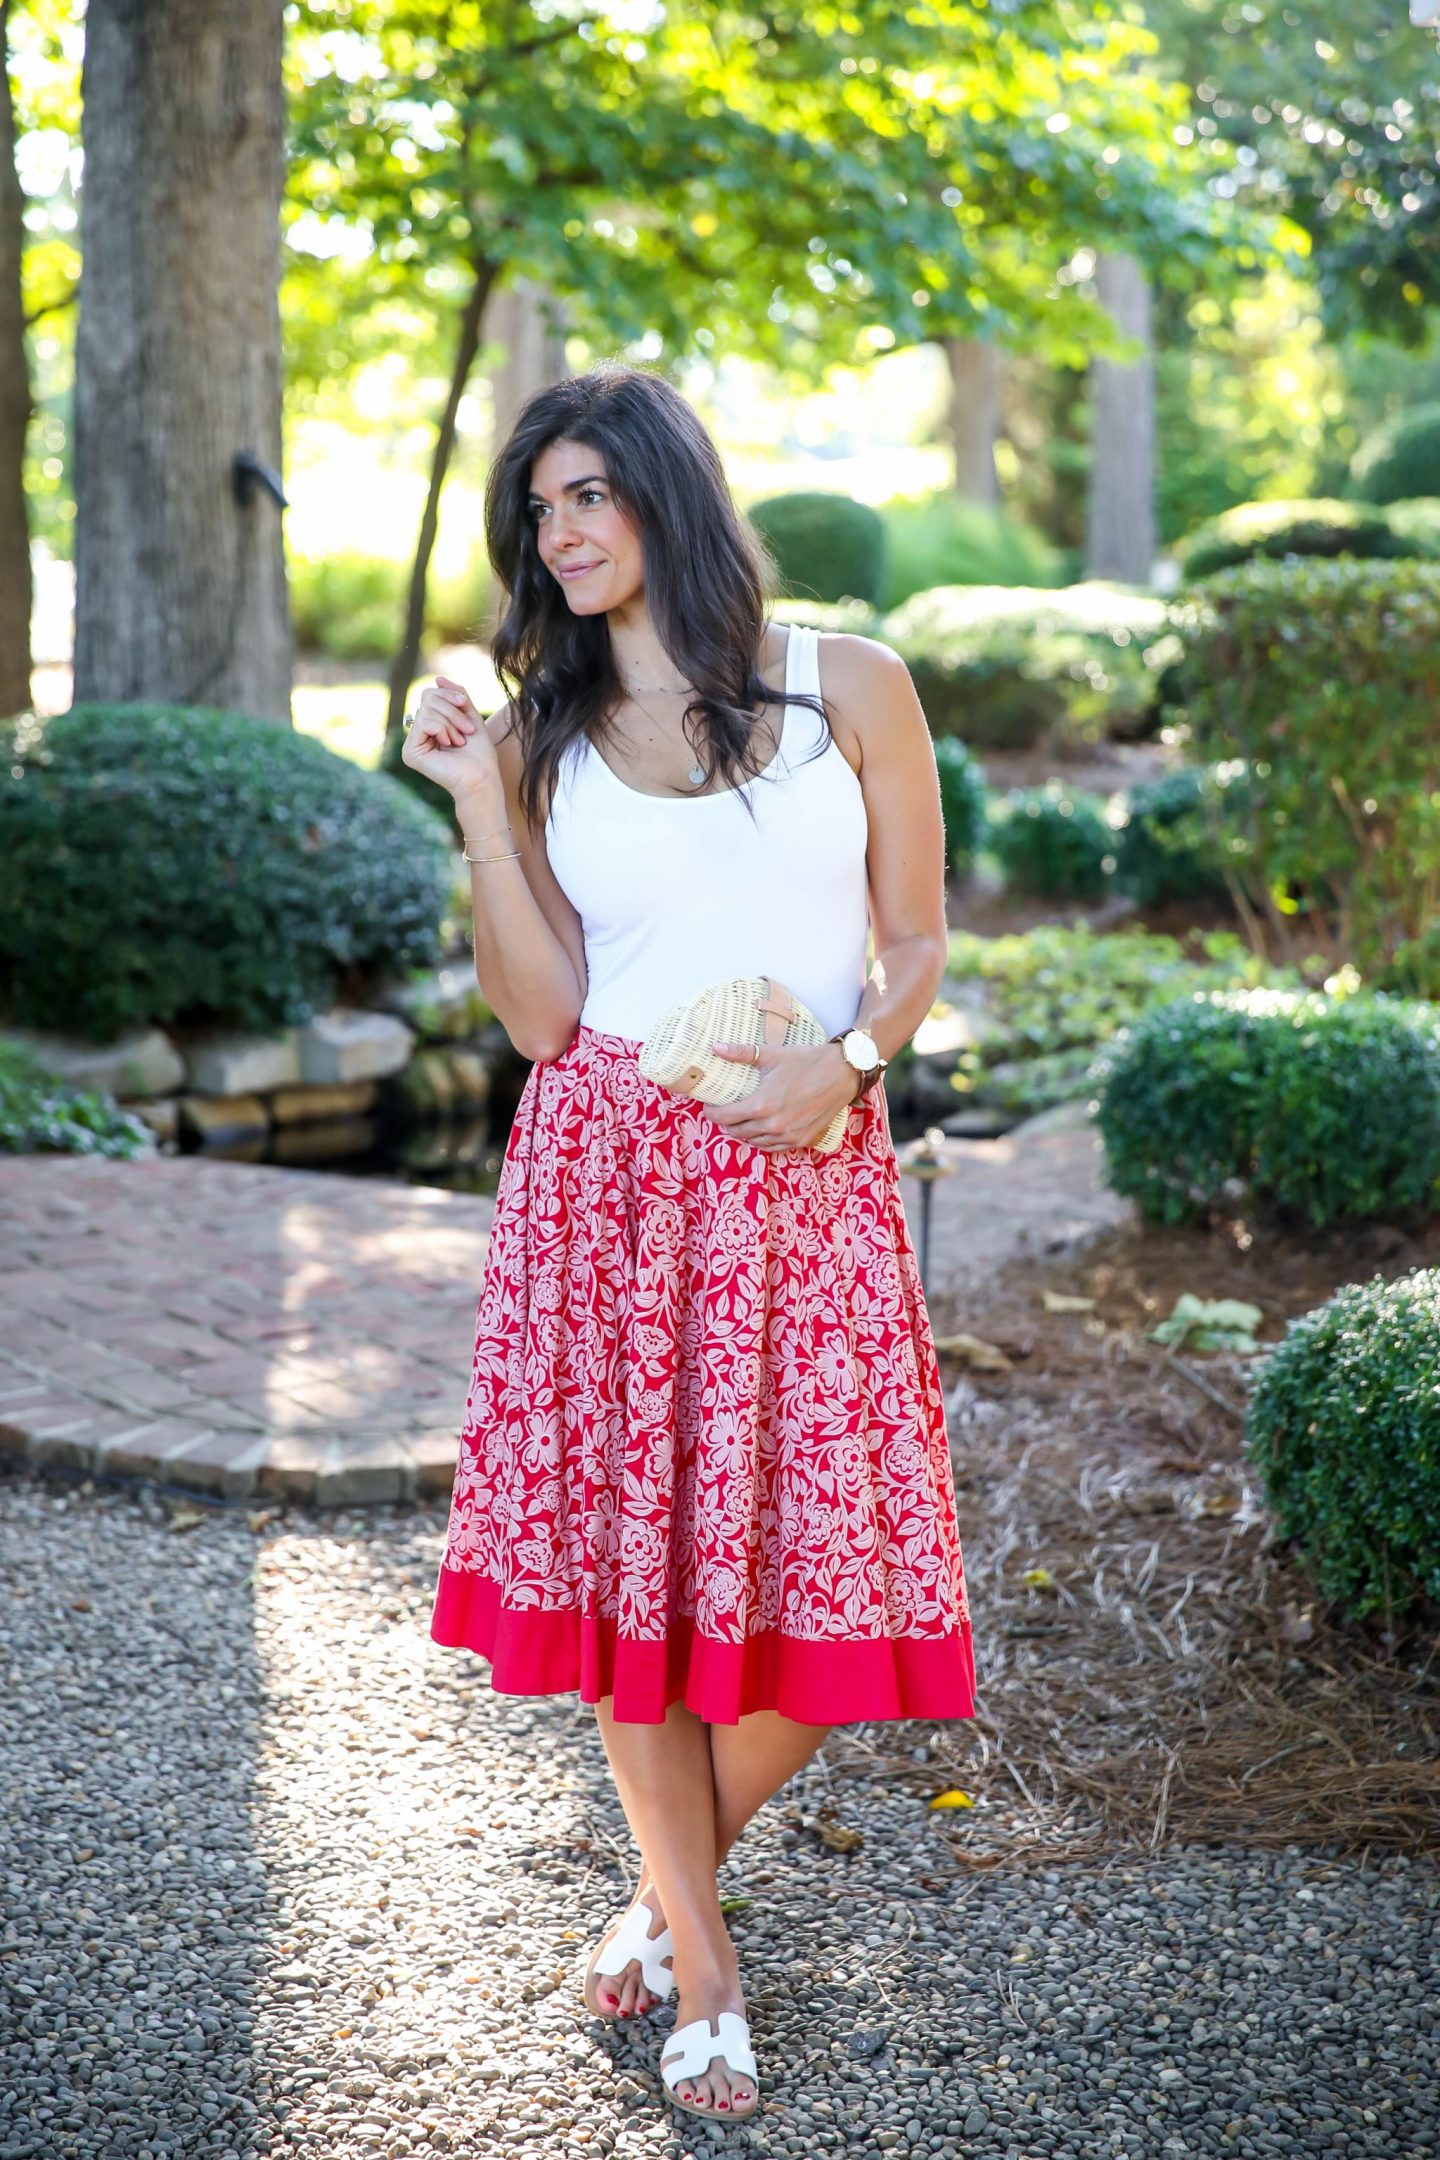 Anthropologie Red Floral Midi Skirt - Summer Outfit Inspiration - Lauren Schwaiger